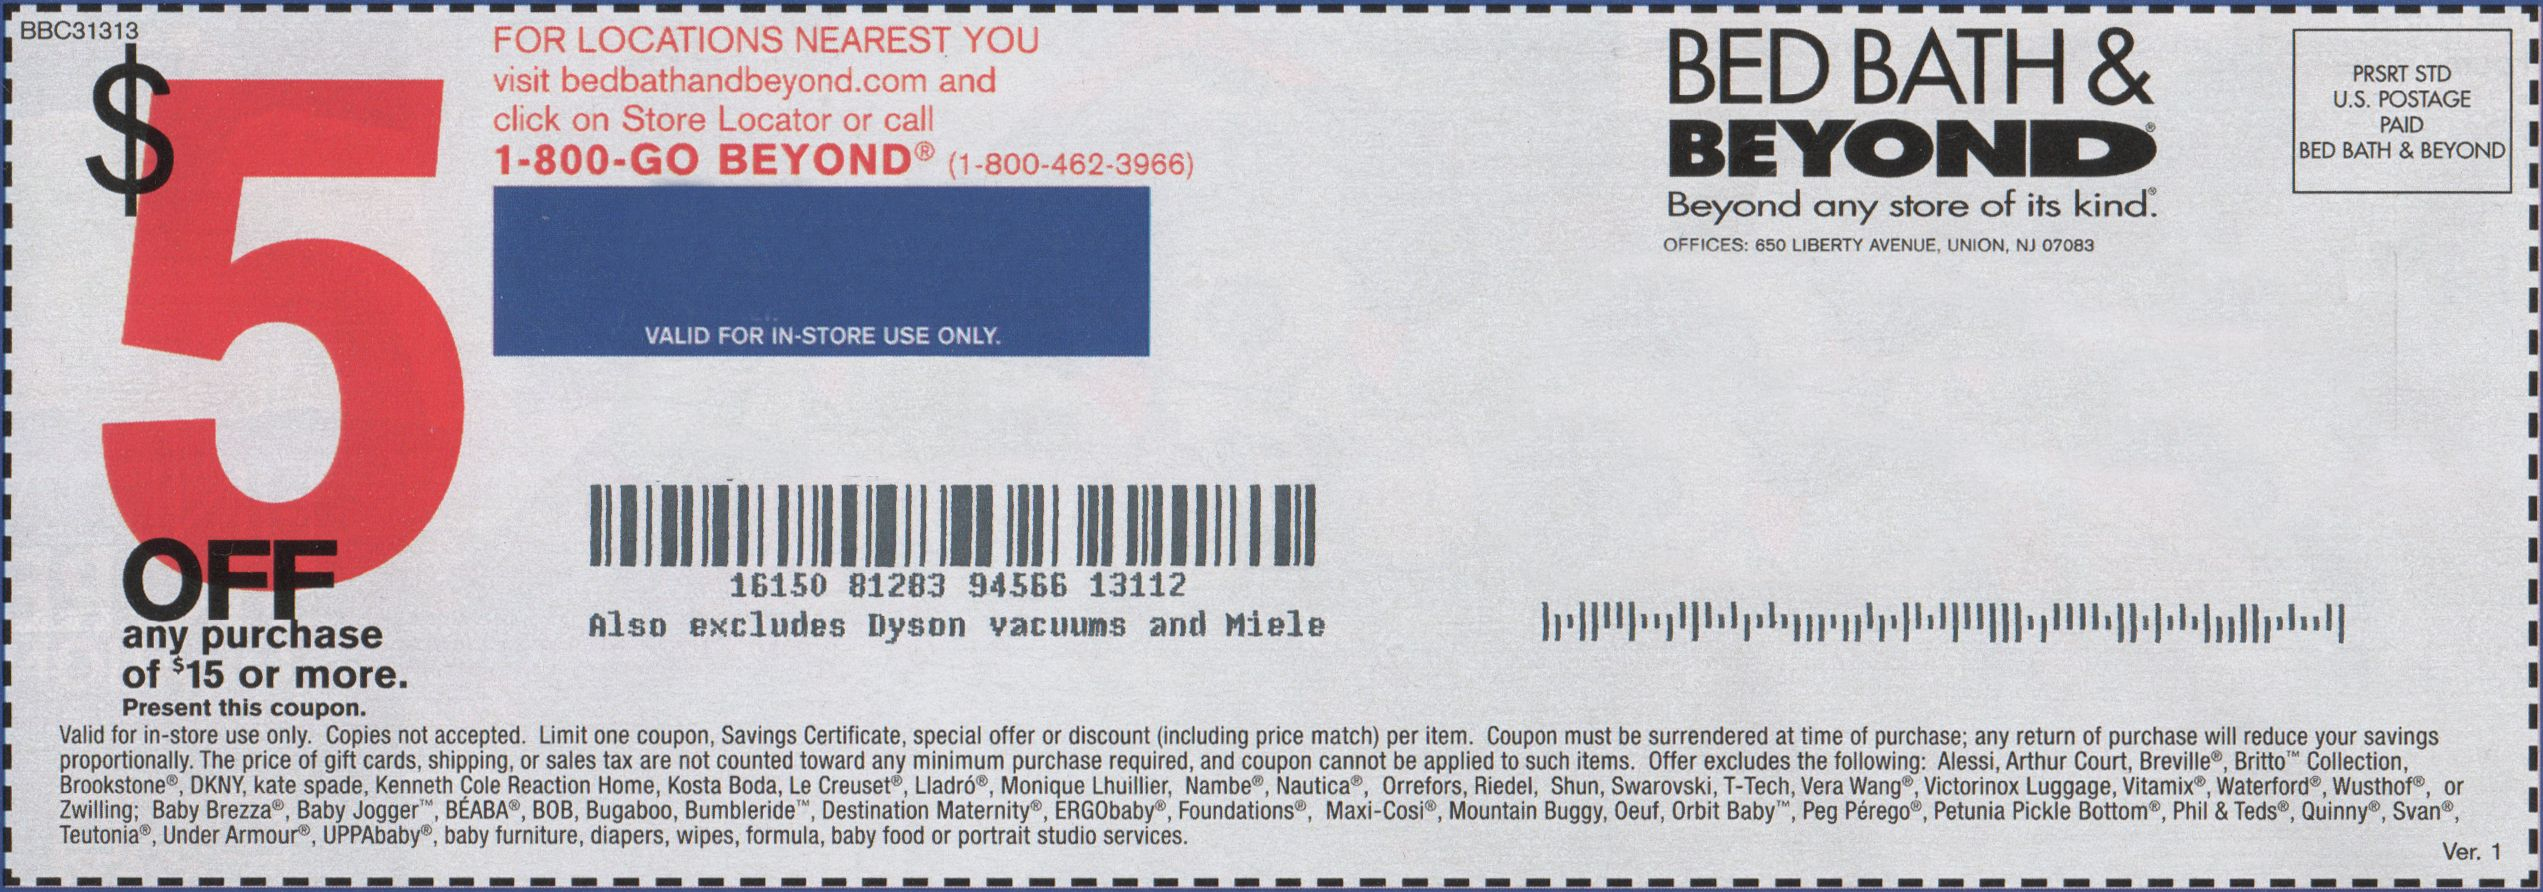 Getting Valid Bed Bath 20 Coupon Printable, Bed Bath & Beyond Inc Is - Free Printable Bed Bath And Beyond Coupon 2019